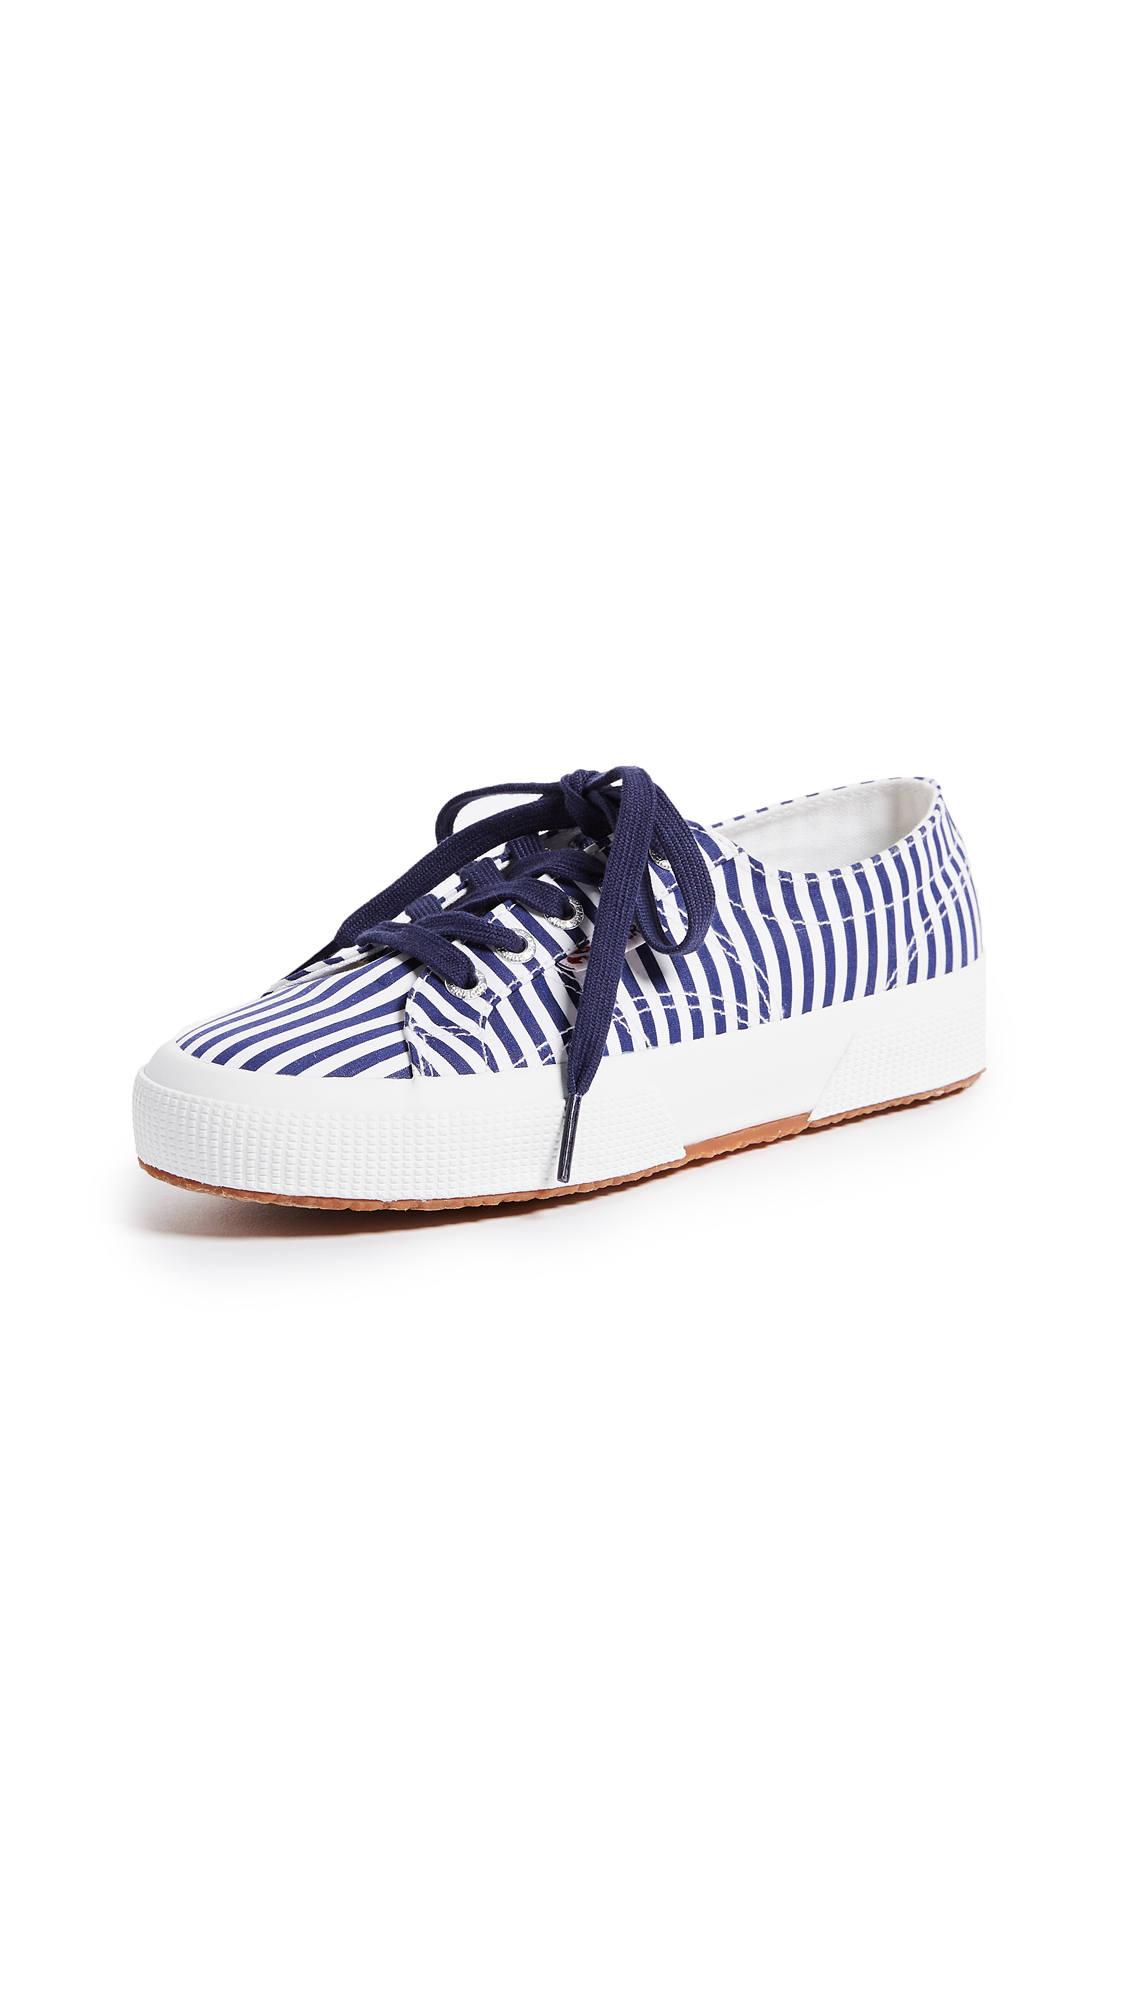 Superga 2750 Fabric Stripe Sneakers - Navy